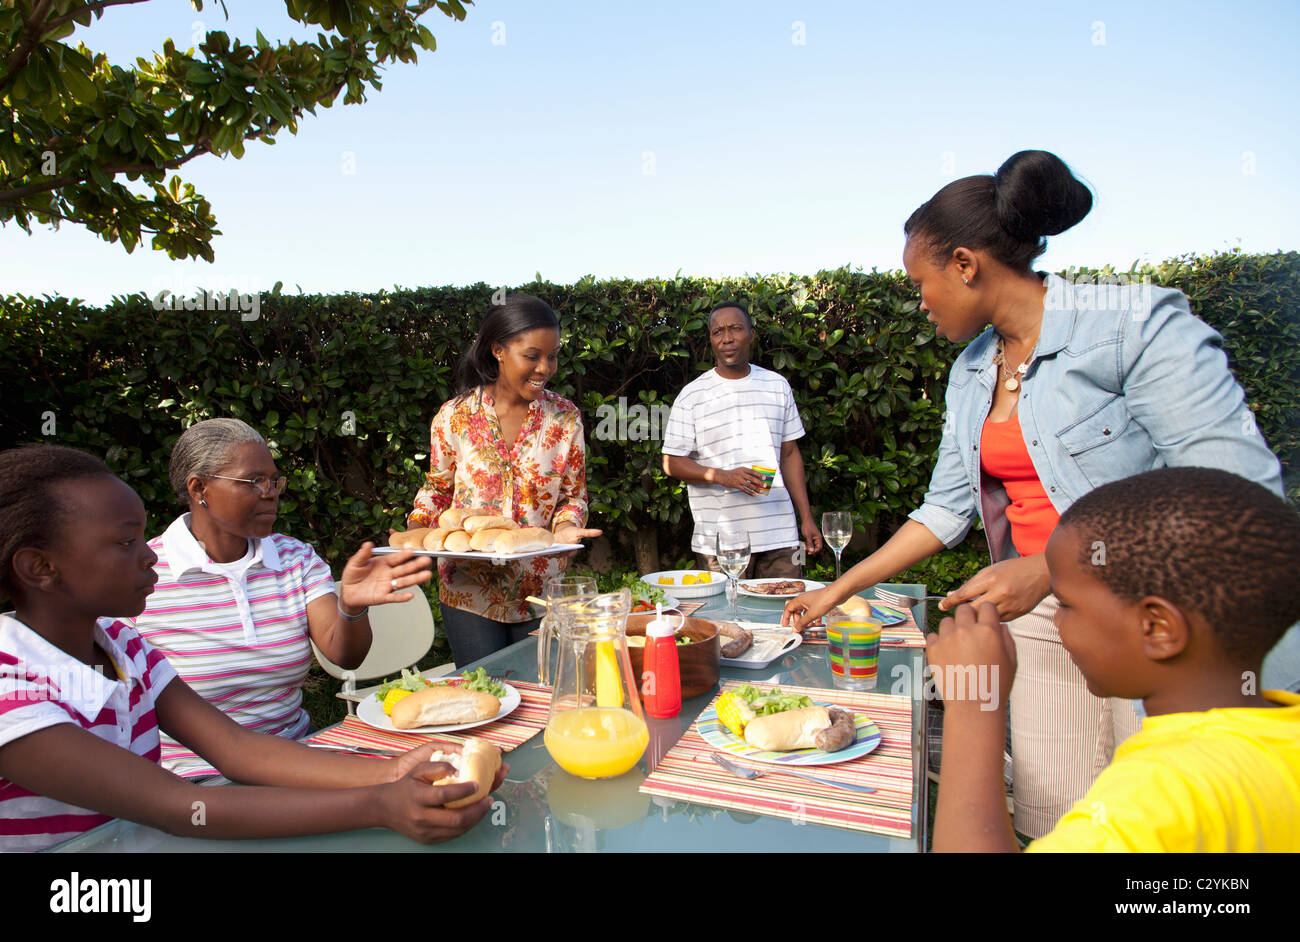 Family having lunch outside, Johannesburg, South Africa - Stock Image